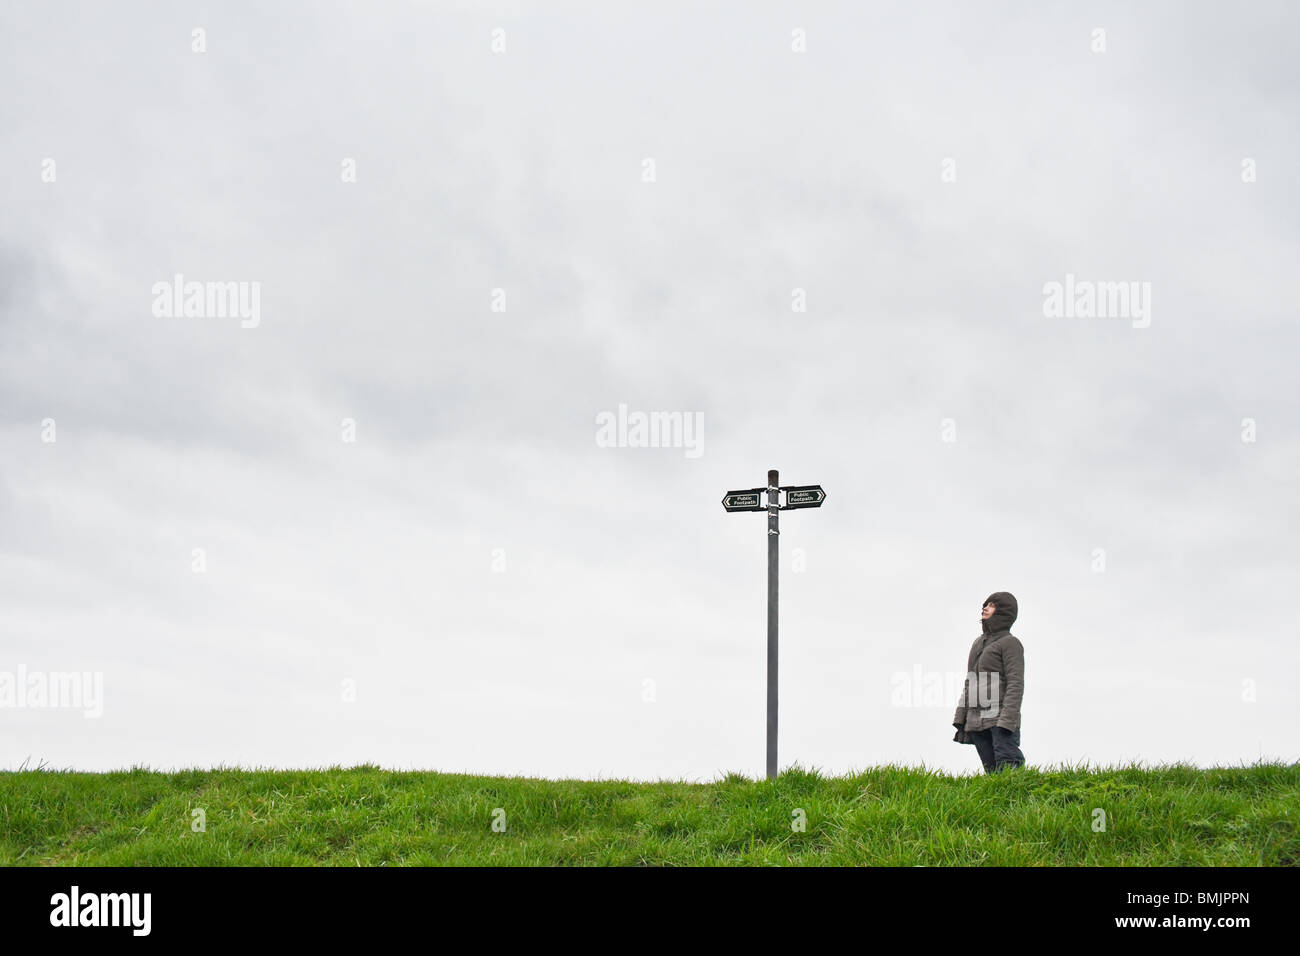 Woman looking up at sign post Photo Stock